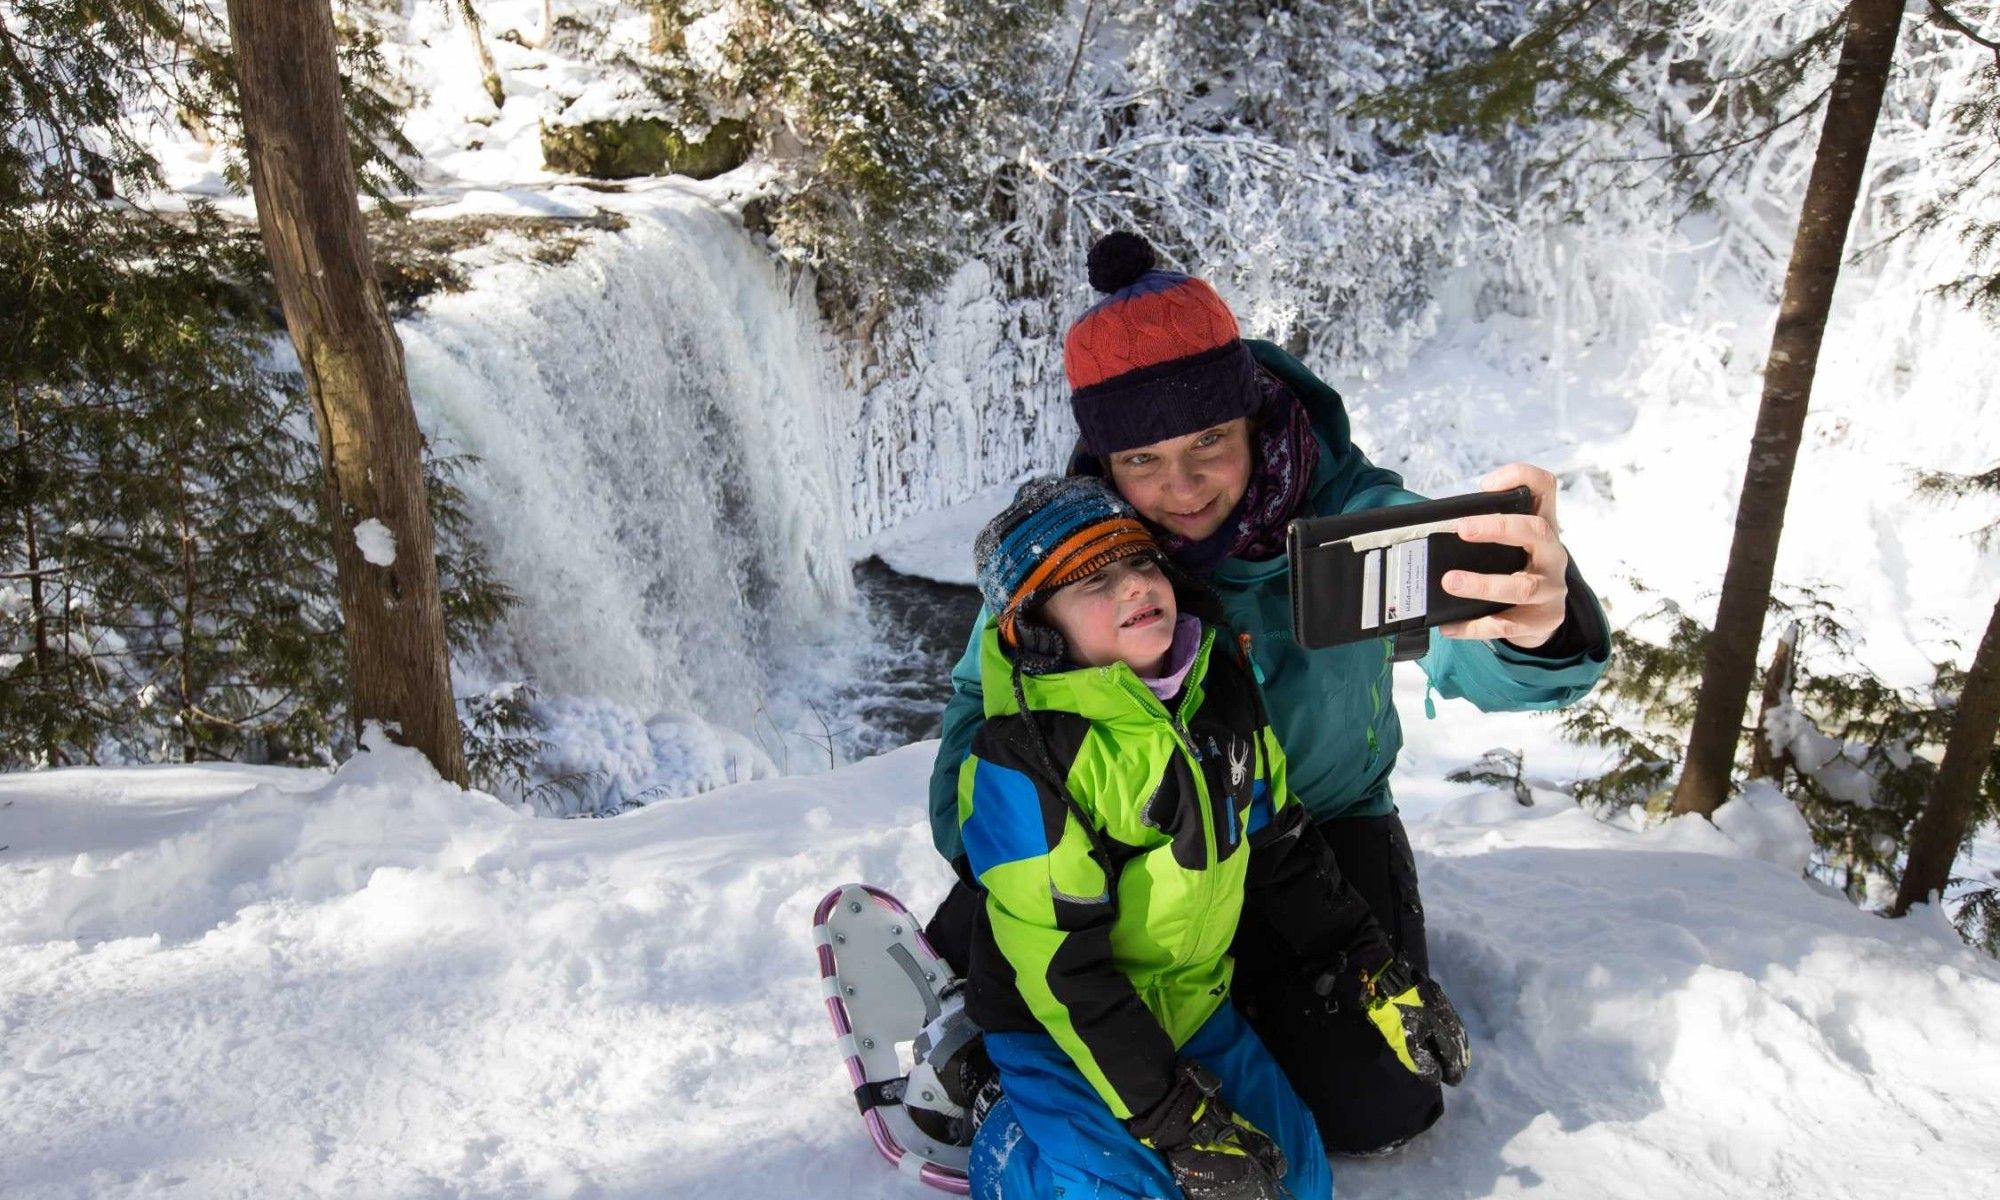 Rheanna and her son snowshoeing